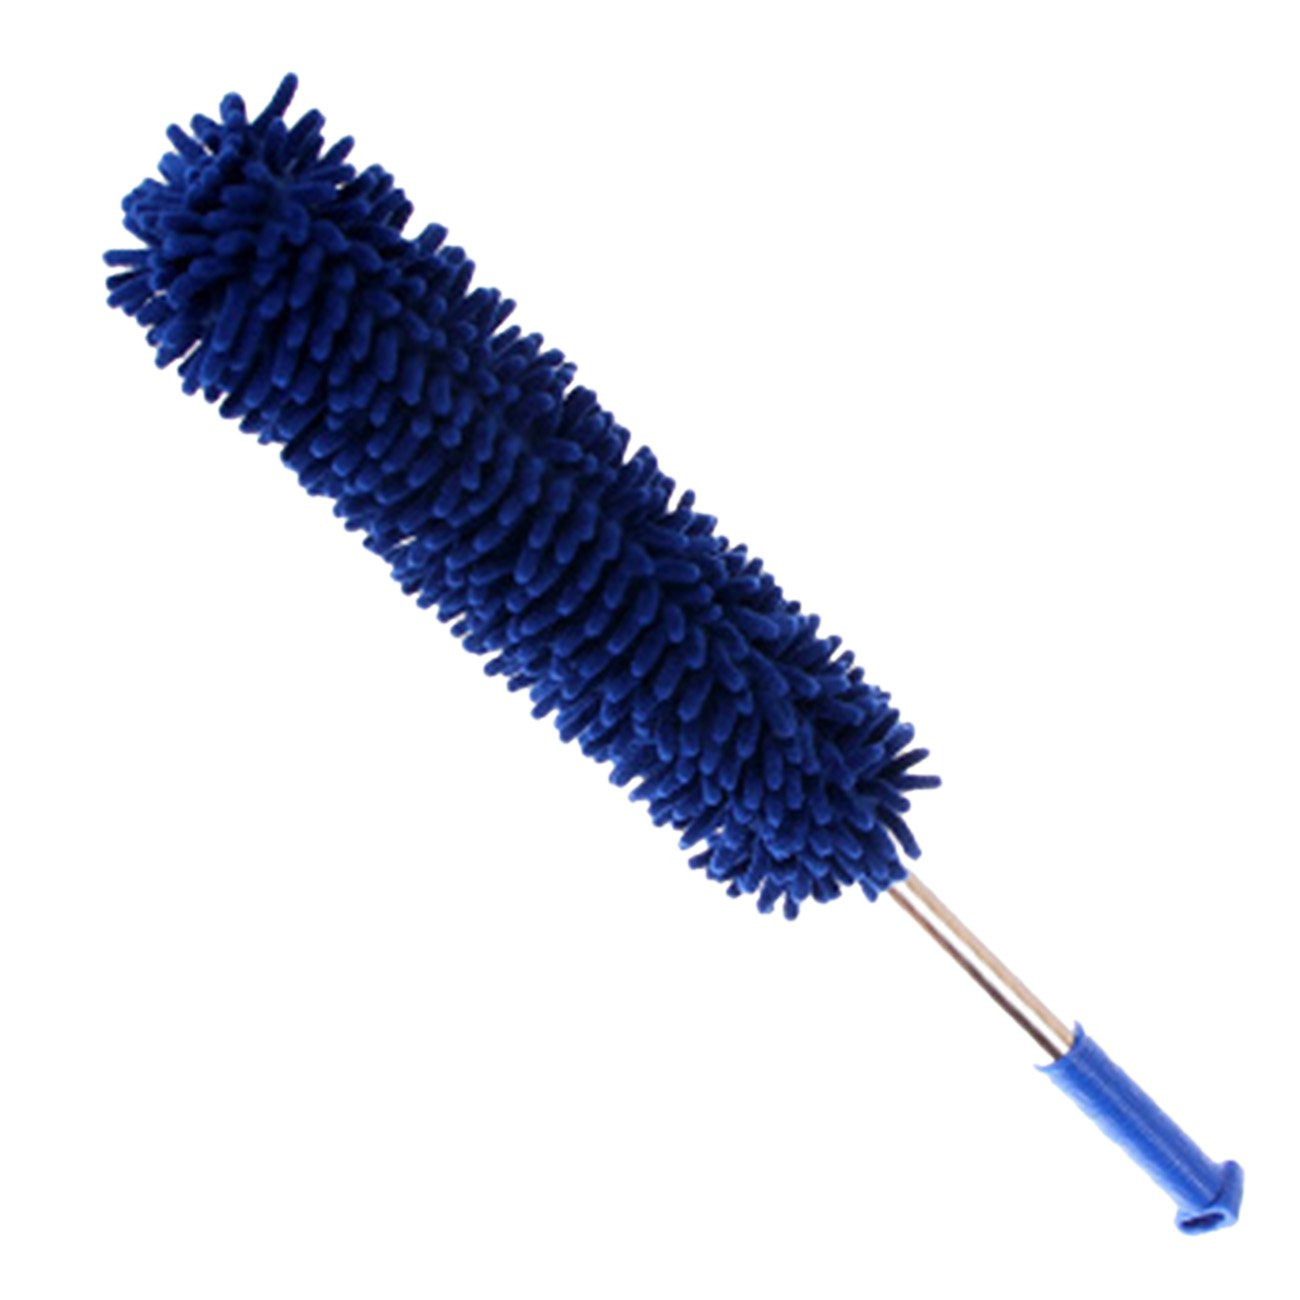 THEE Retractable Microfiber Duster Cleaner Dust Cleaning Home Car Use